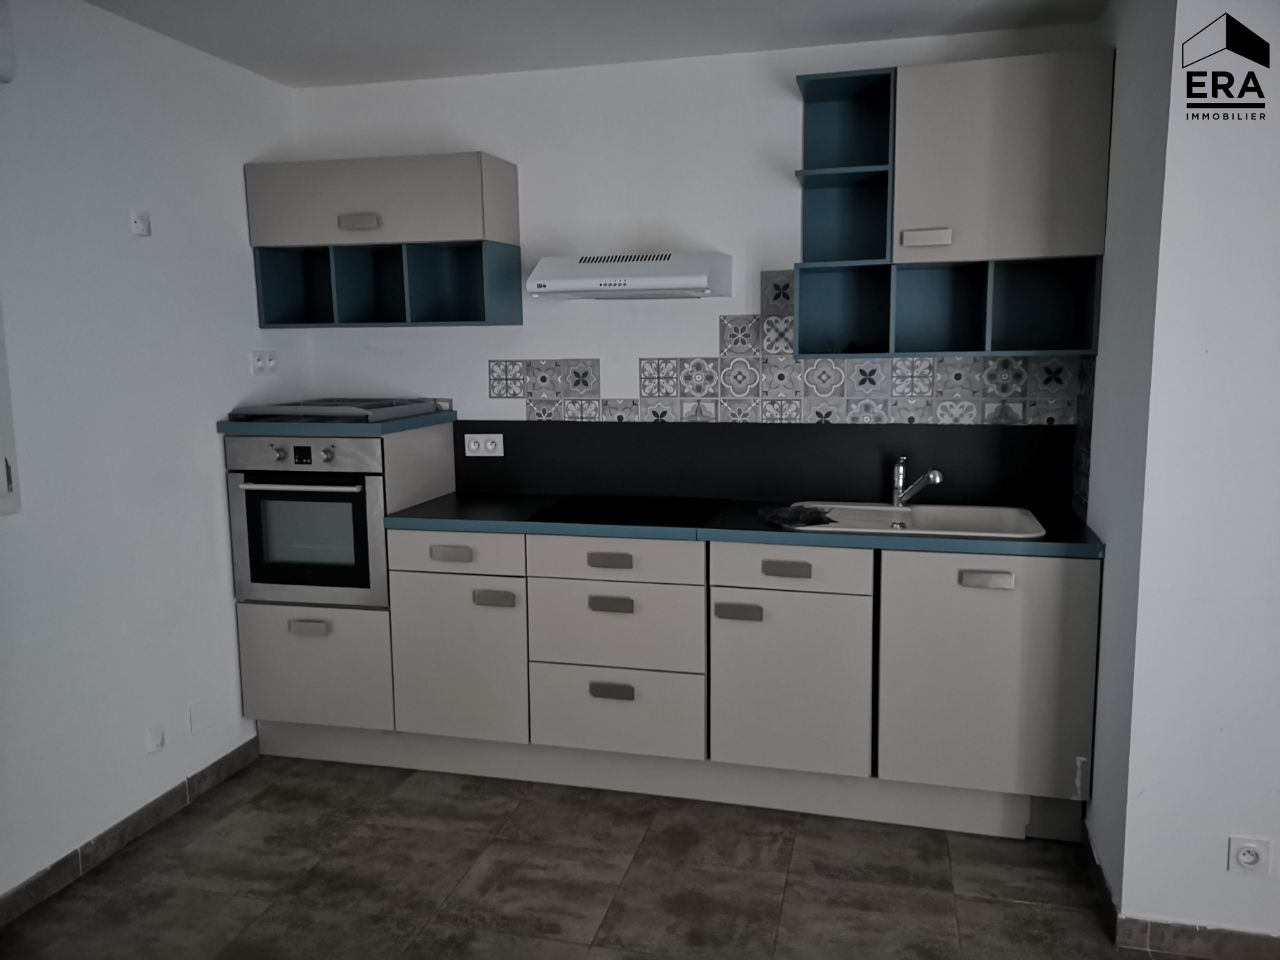 Location d'un appartement F4 (80 m²) à SANTA LUCIA DI MORIANI